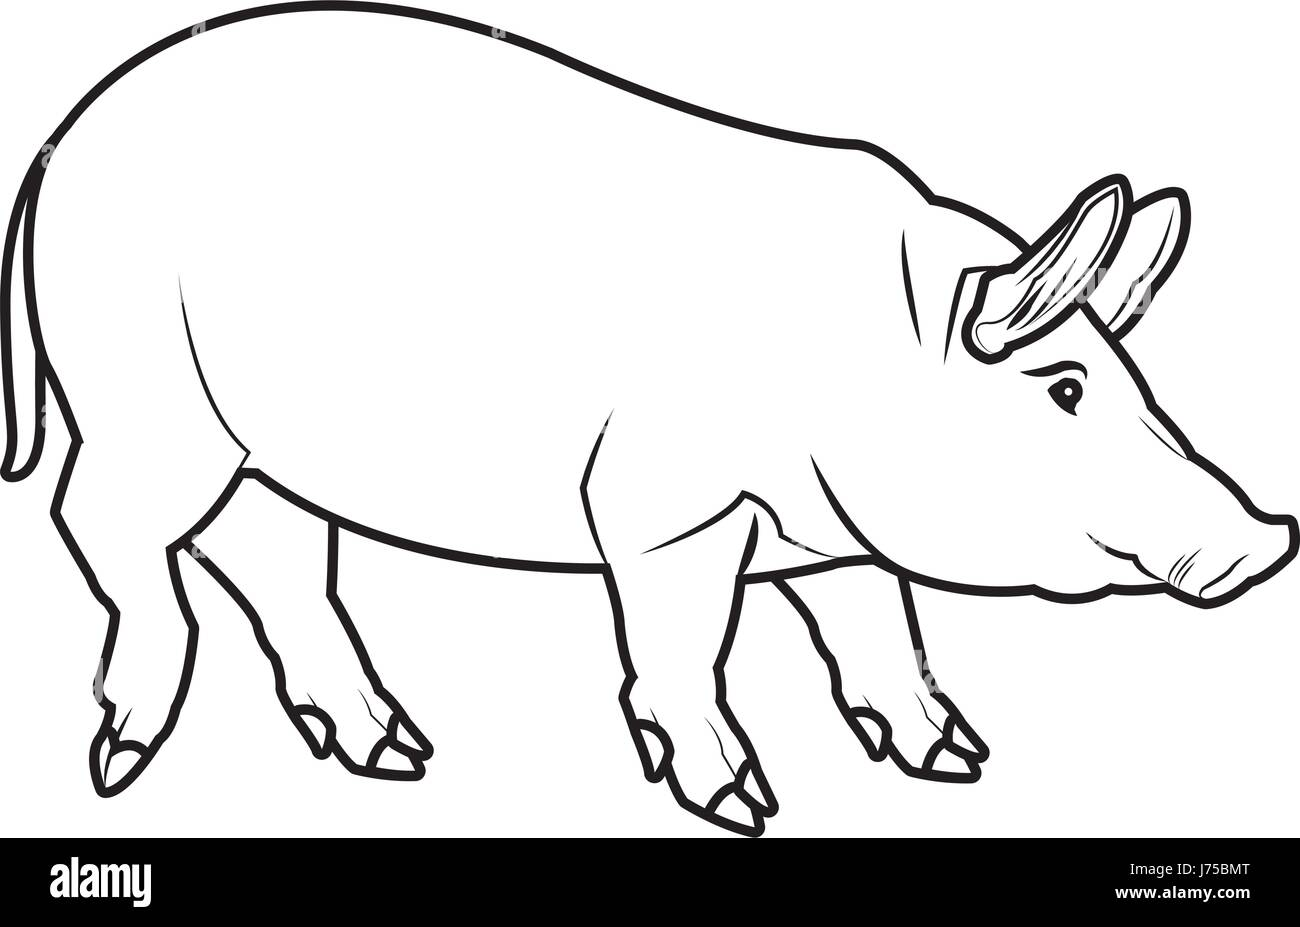 Cute Pig Cartoon Animal Farm Image Stock Vector Image Art Alamy